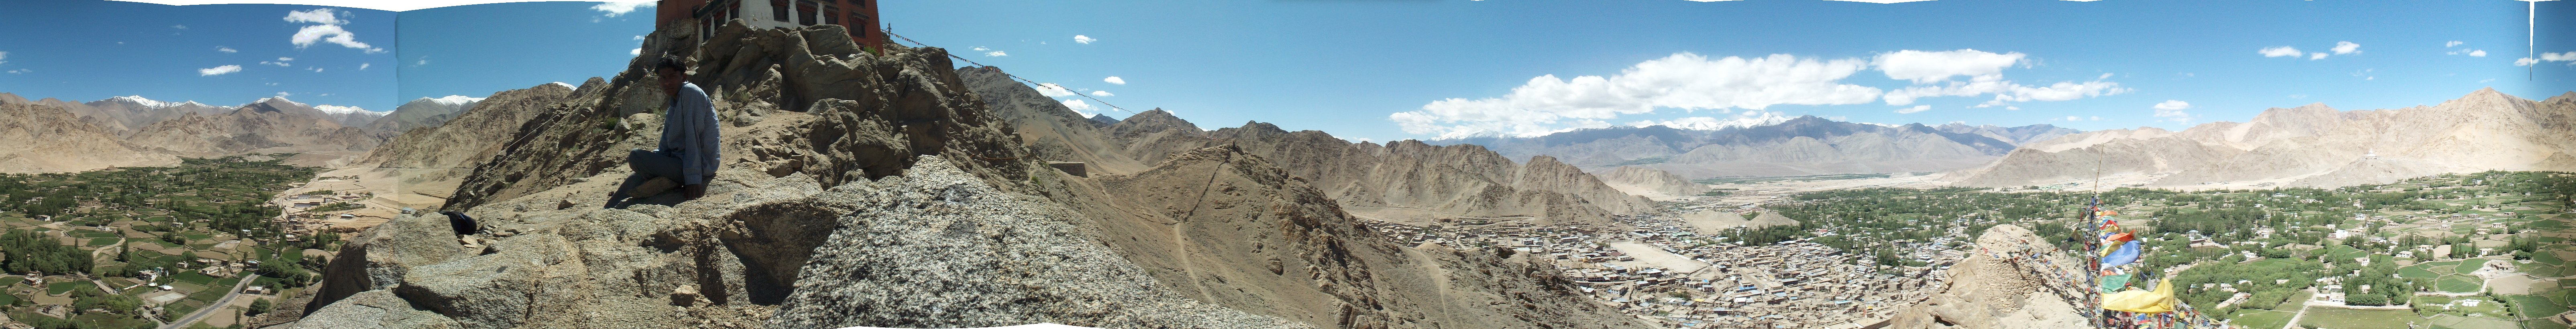 From Leh Palace, overlooking Leh and hills